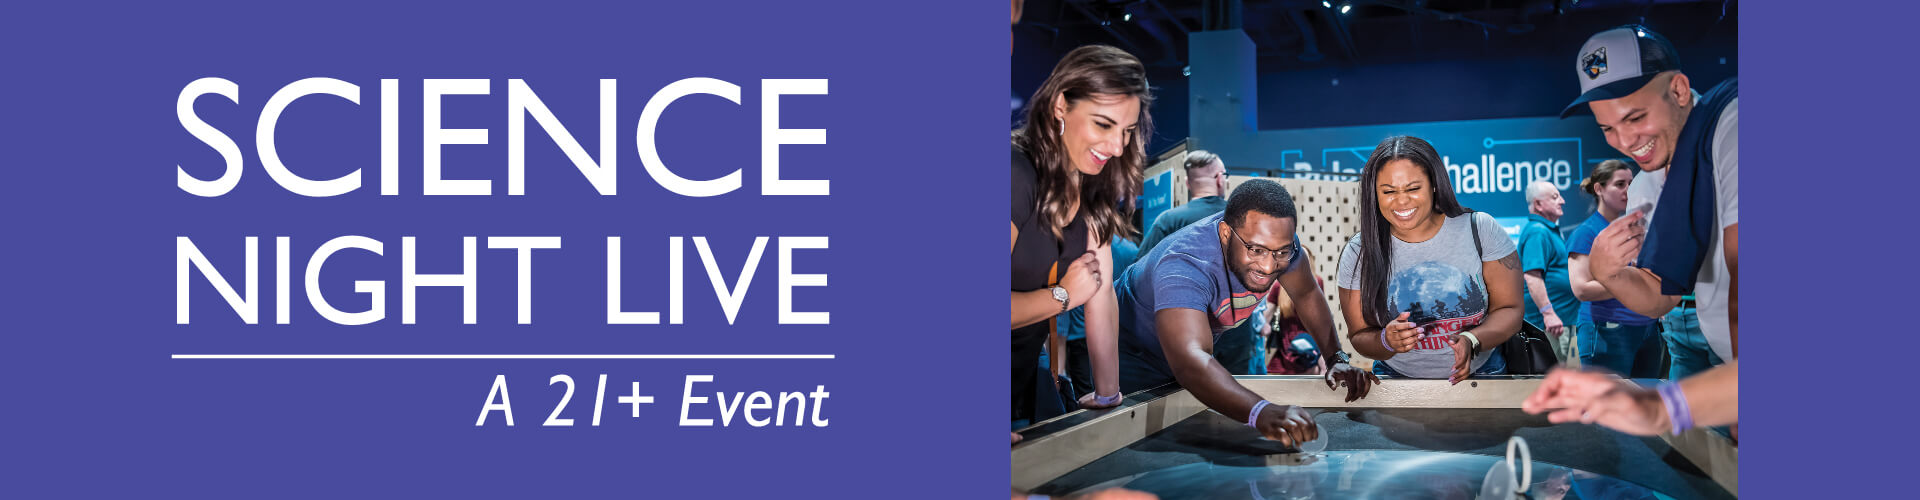 Science Night Live - A 21+ Event